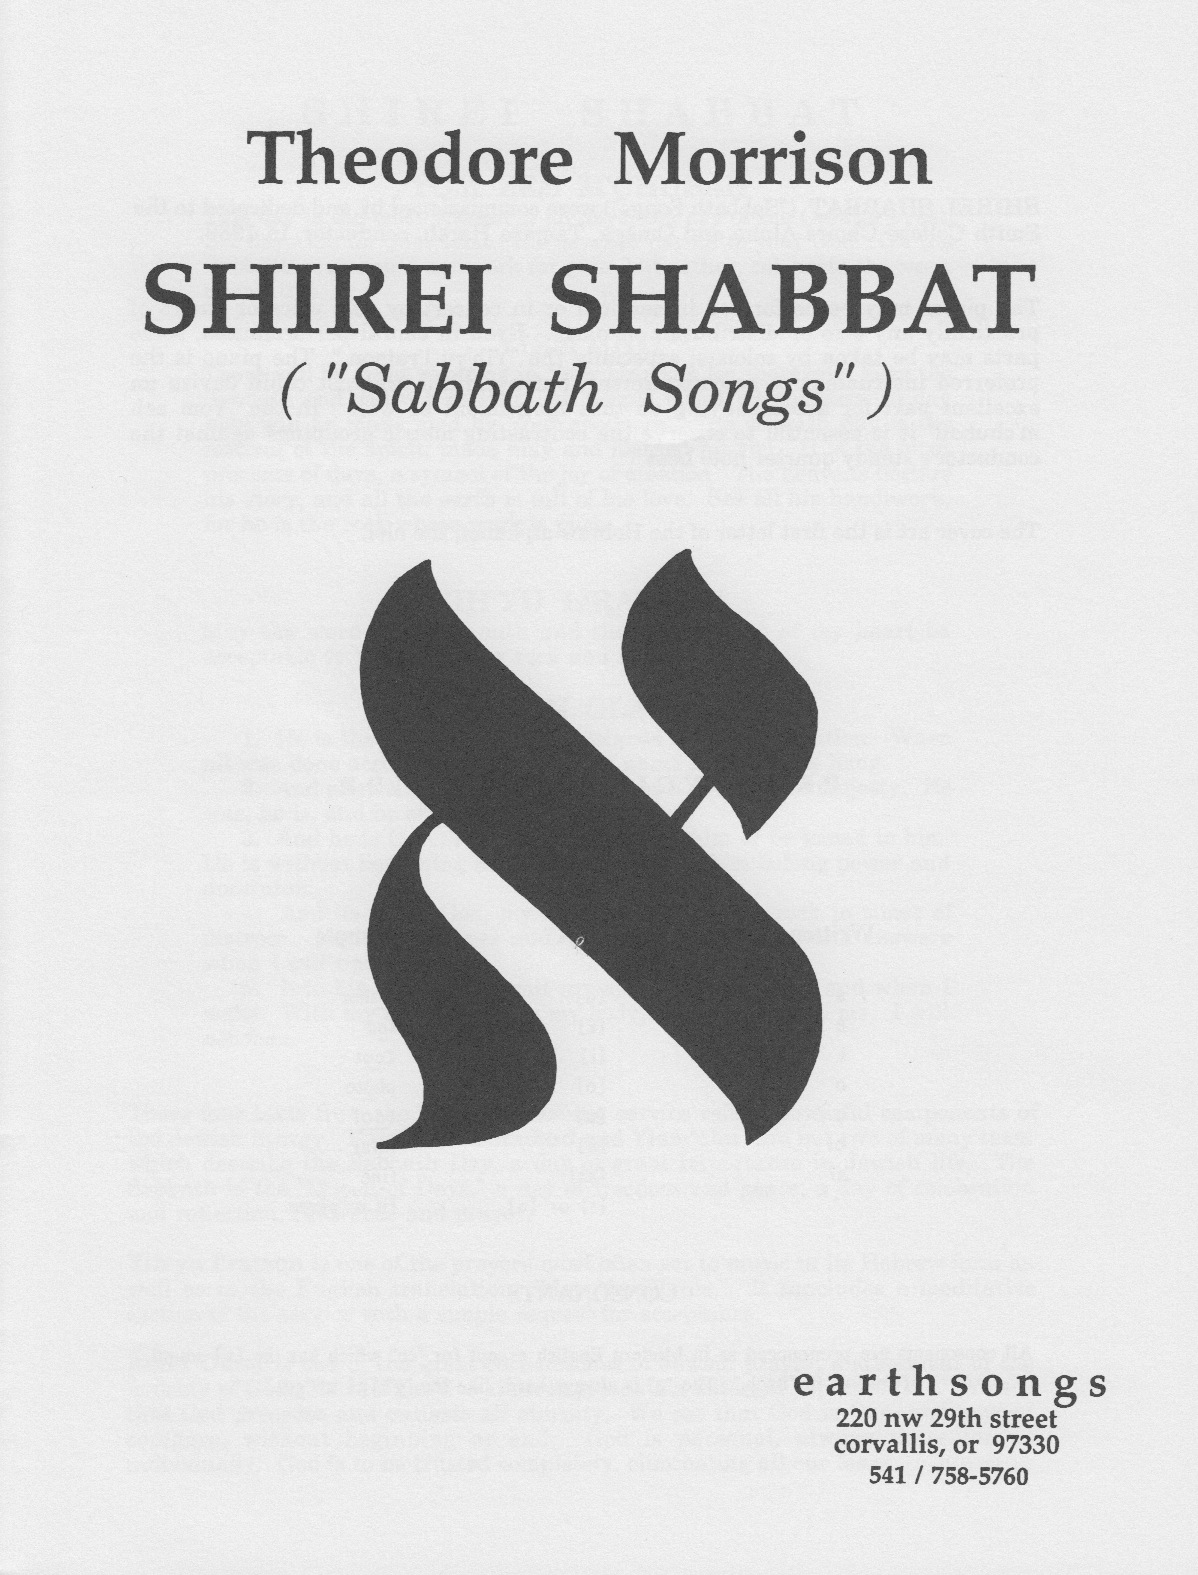 shirei shabbat (sa or tb)